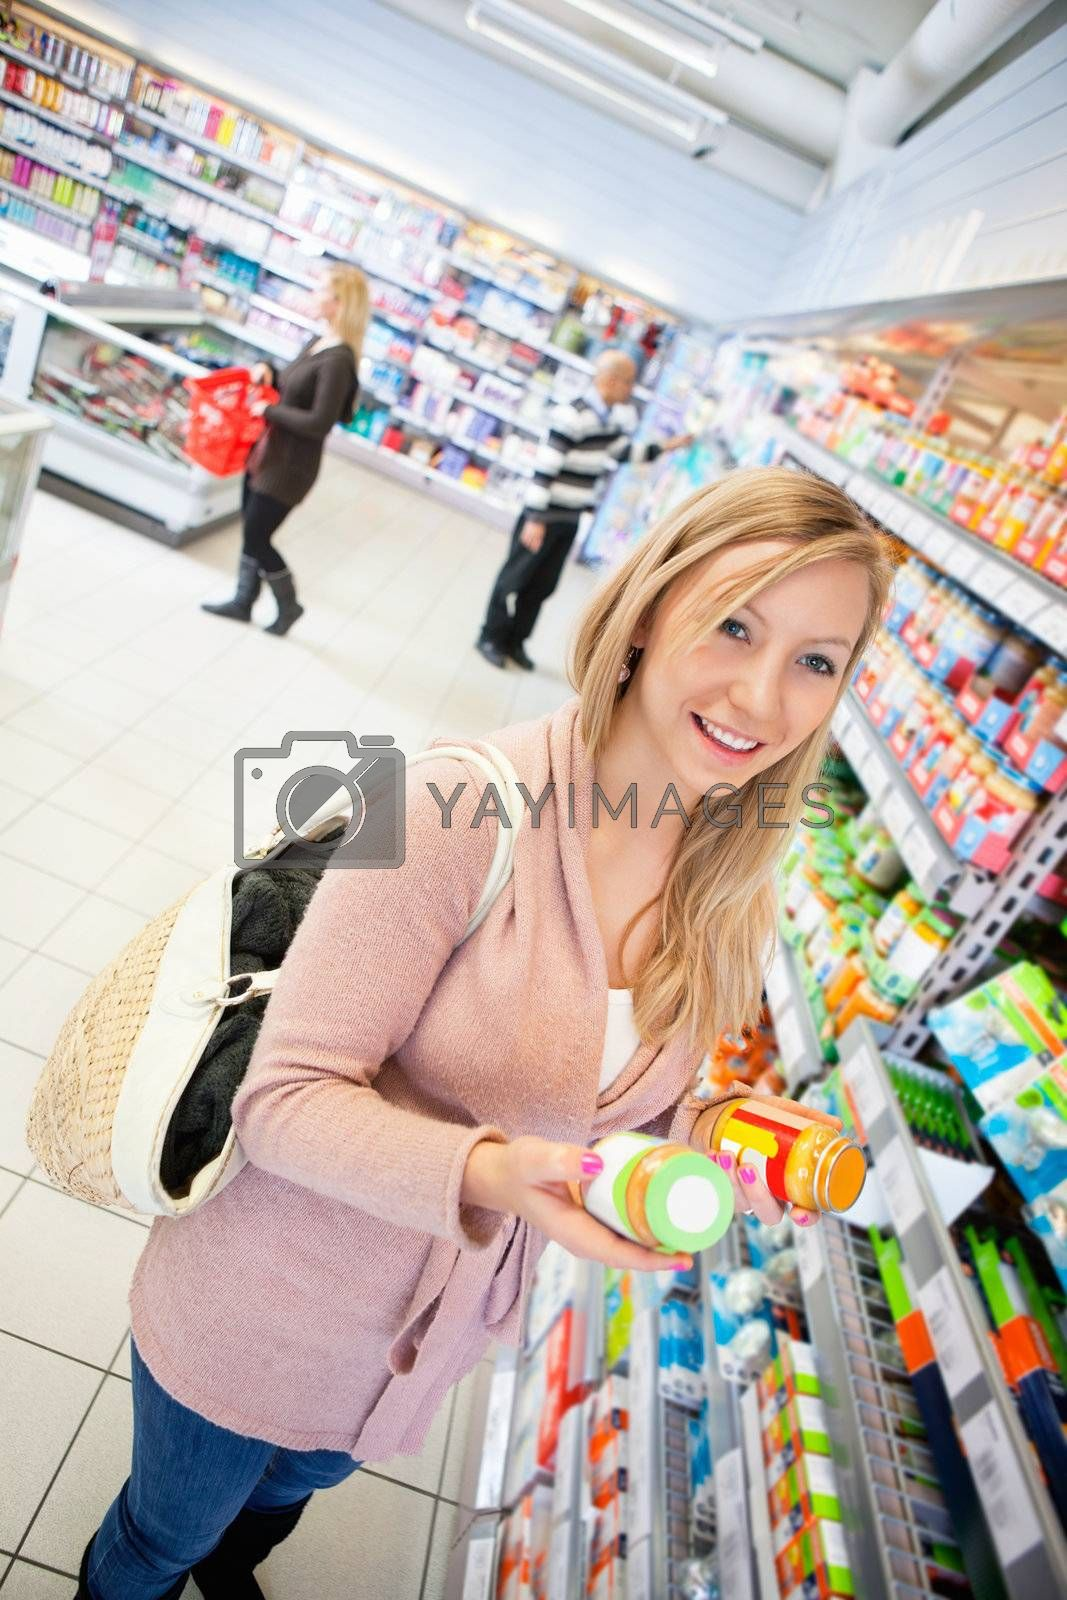 Happy young woman holding jar in the supermarket with people in the background